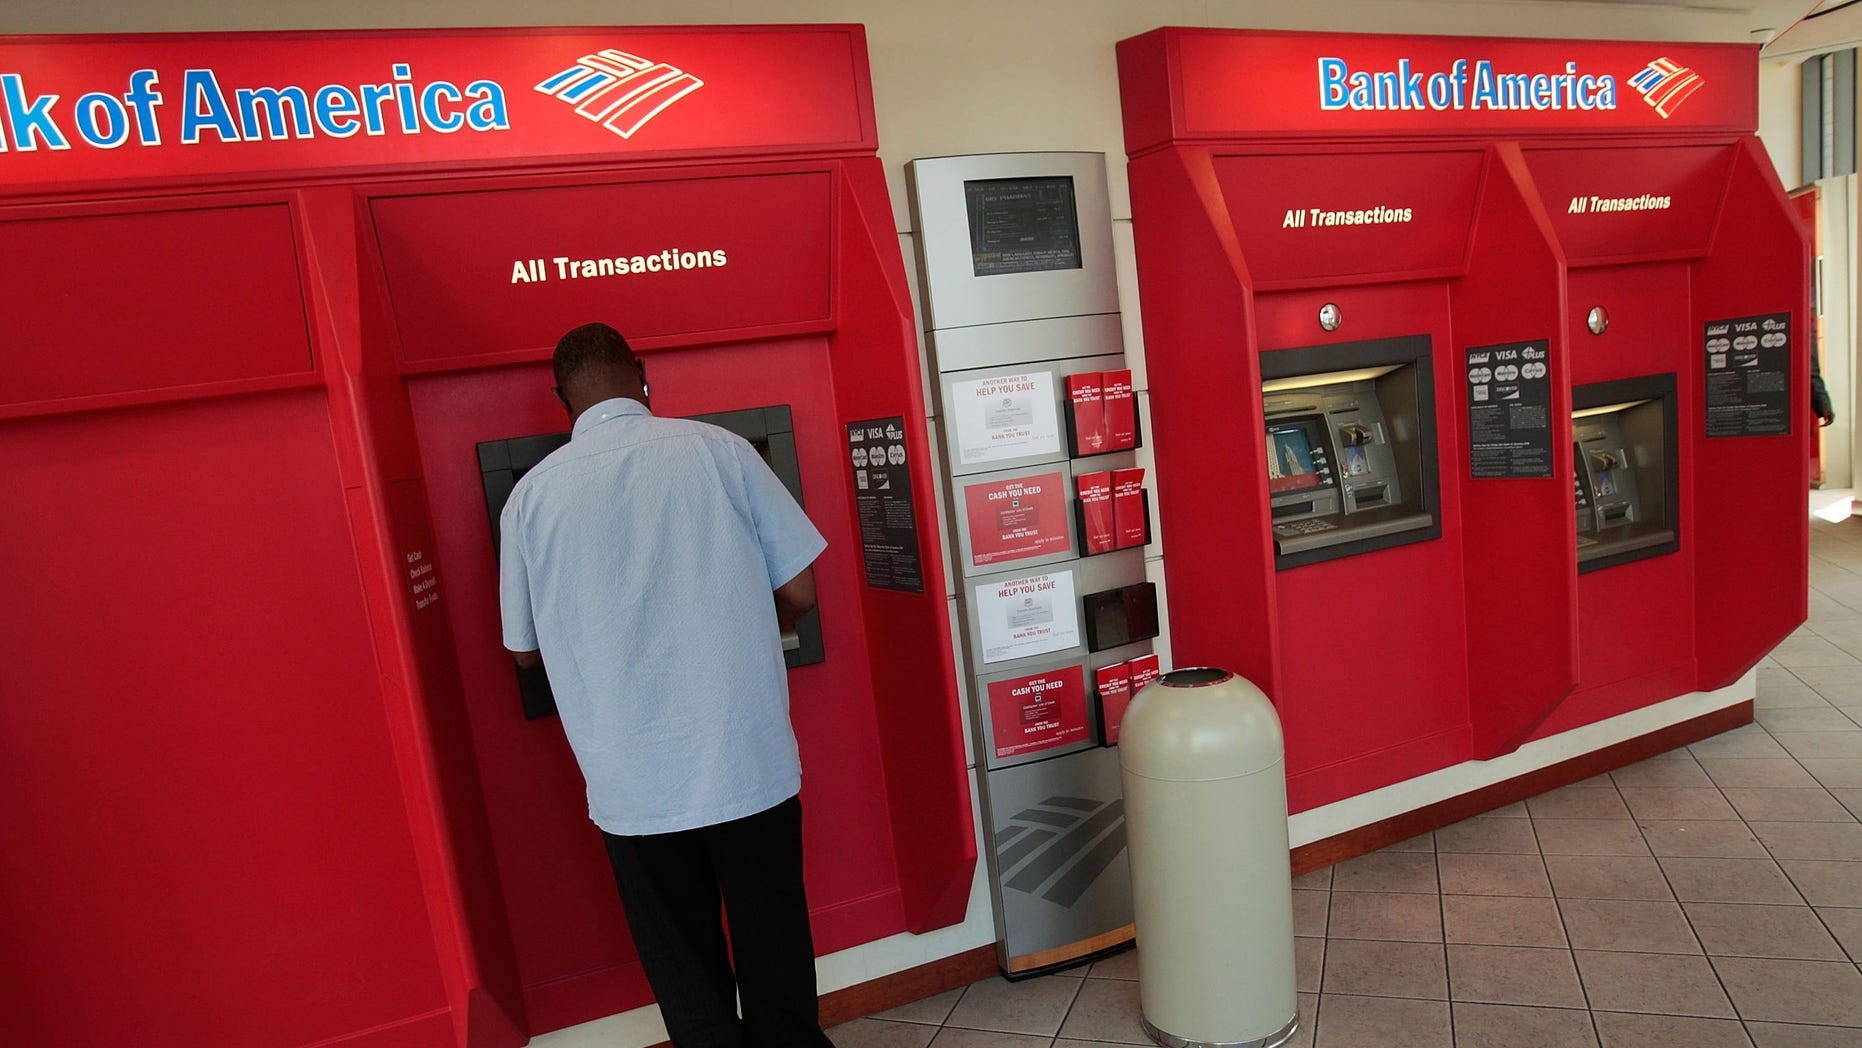 NEW YORK - JULY 21:  A man operates an automated teller machine at a  Bank of America branch bank in midtown Manhattan July 21, 2008 in New York City. Bank of America Corp. reported falling profits of 41-percent to $3.41 billion in their second quarter earnings but nonetheless beating analysts' 54-percent estimates, sending their stock price higher to $30.24 a share in morning trading.  (Photo by Chris Hondros/Getty Images)